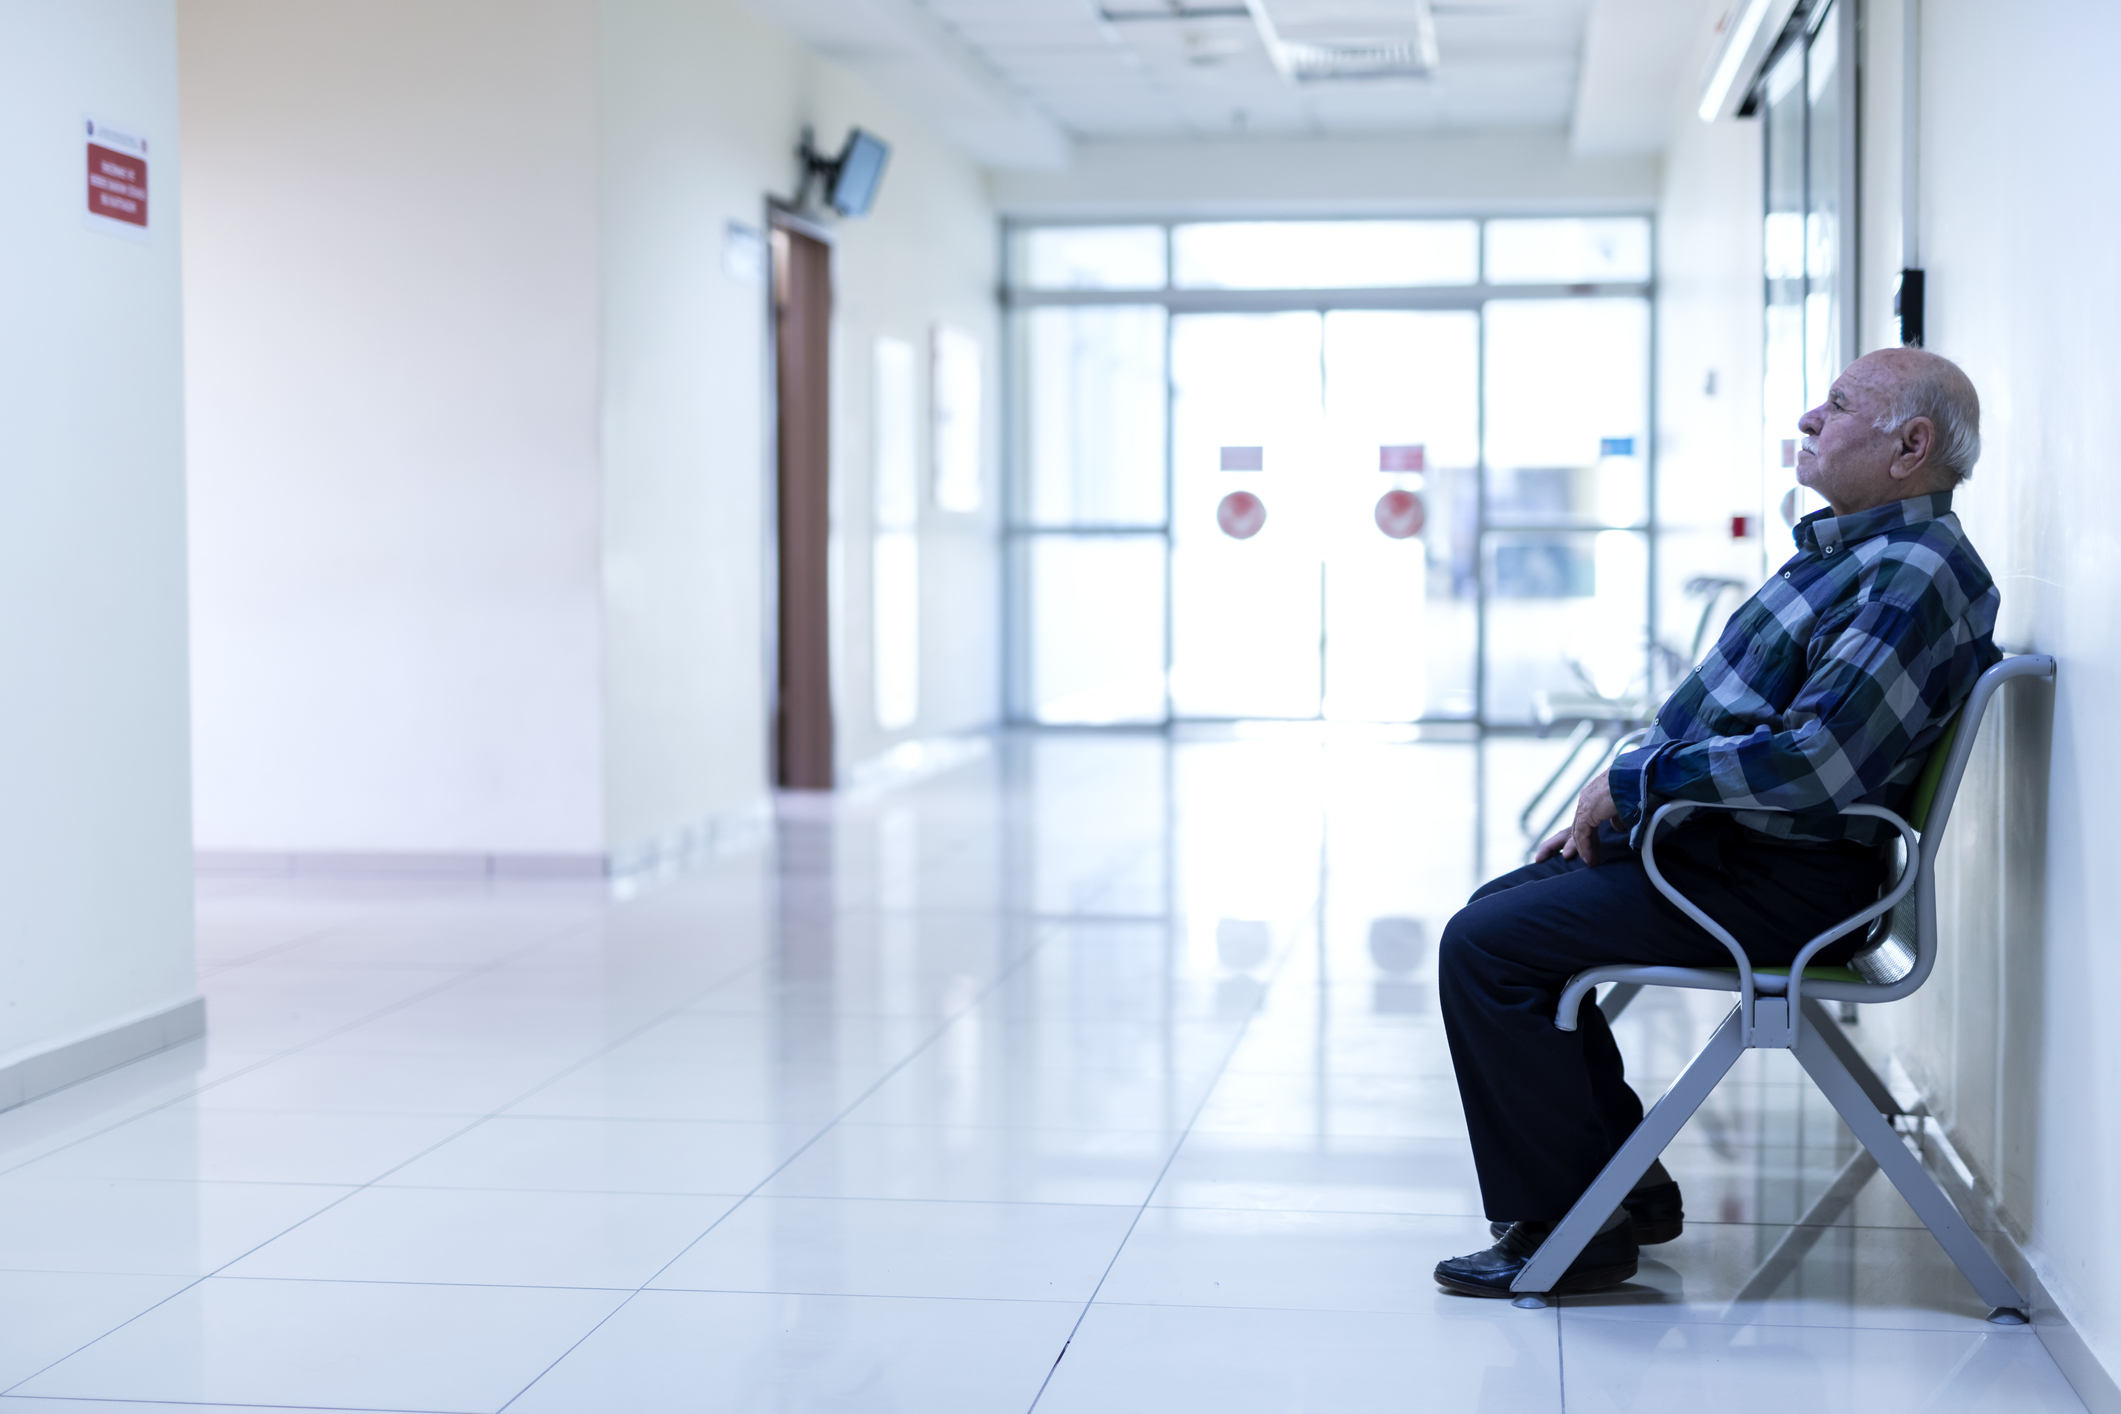 stock photo of older man in hospital waiting area